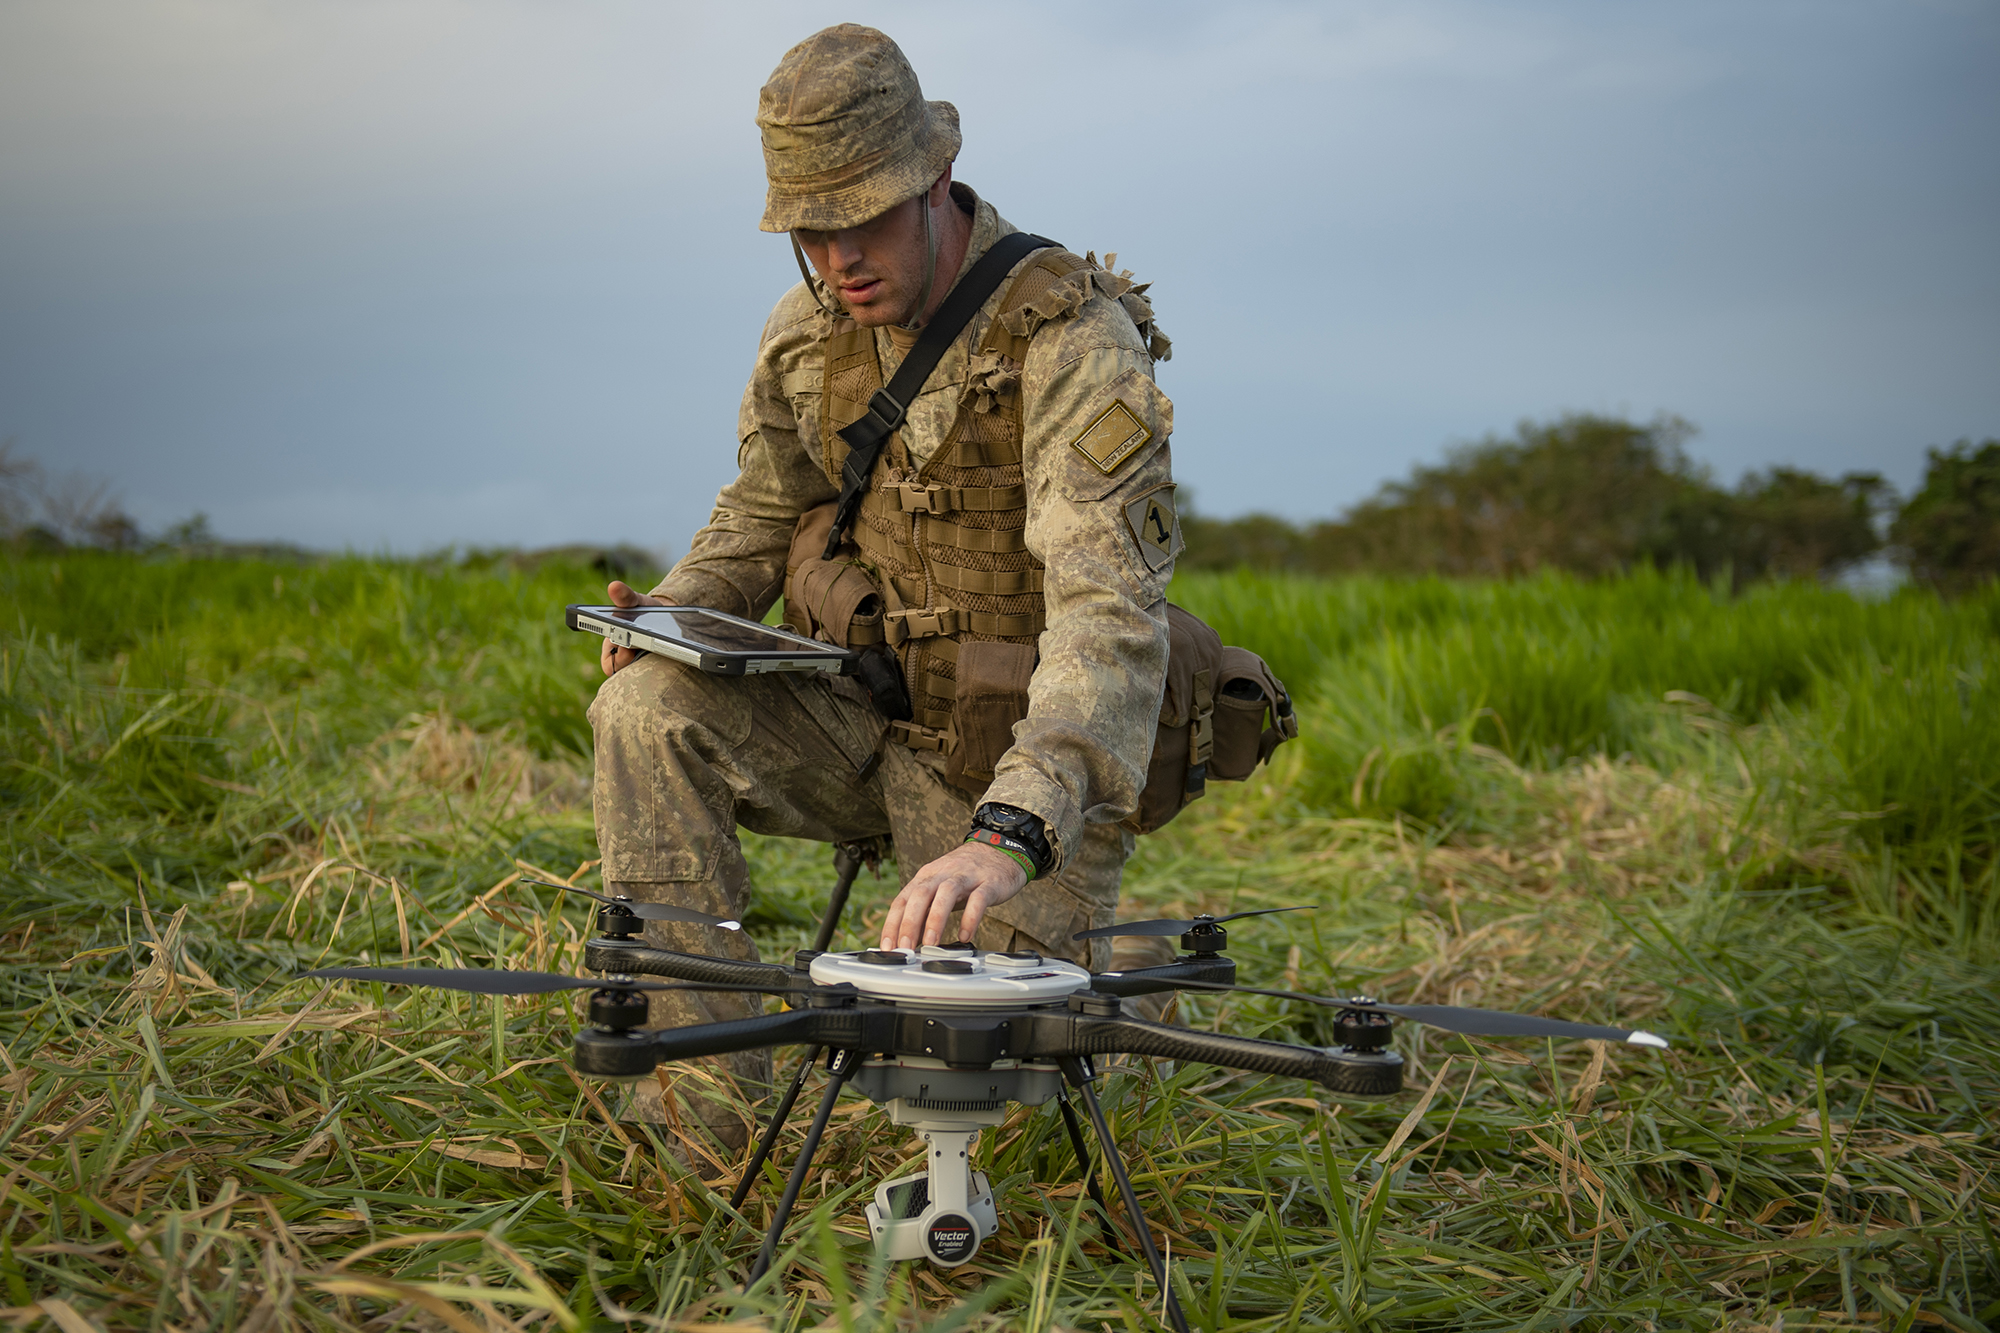 New Zealand Chief of Army Writing Competition Winner of the New Zealand Defence Force Civilian Writing Category: Slaughtering Sacred Cows – The NZ Army needs to get real about what it can and cannot do out to 2040